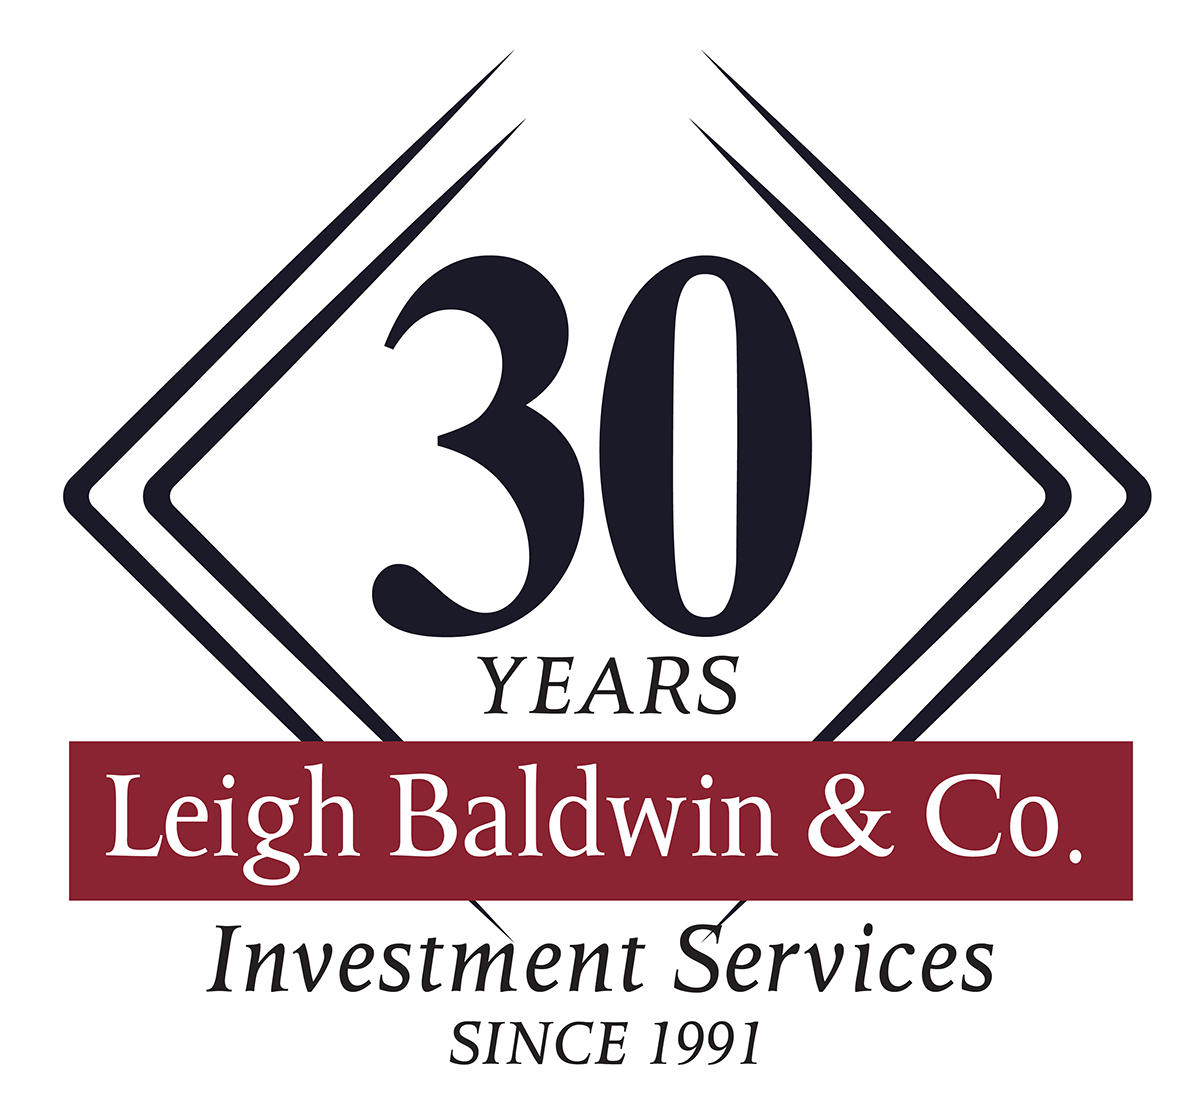 Leigh Baldwin & Co Investment Services - 30 Years Badge